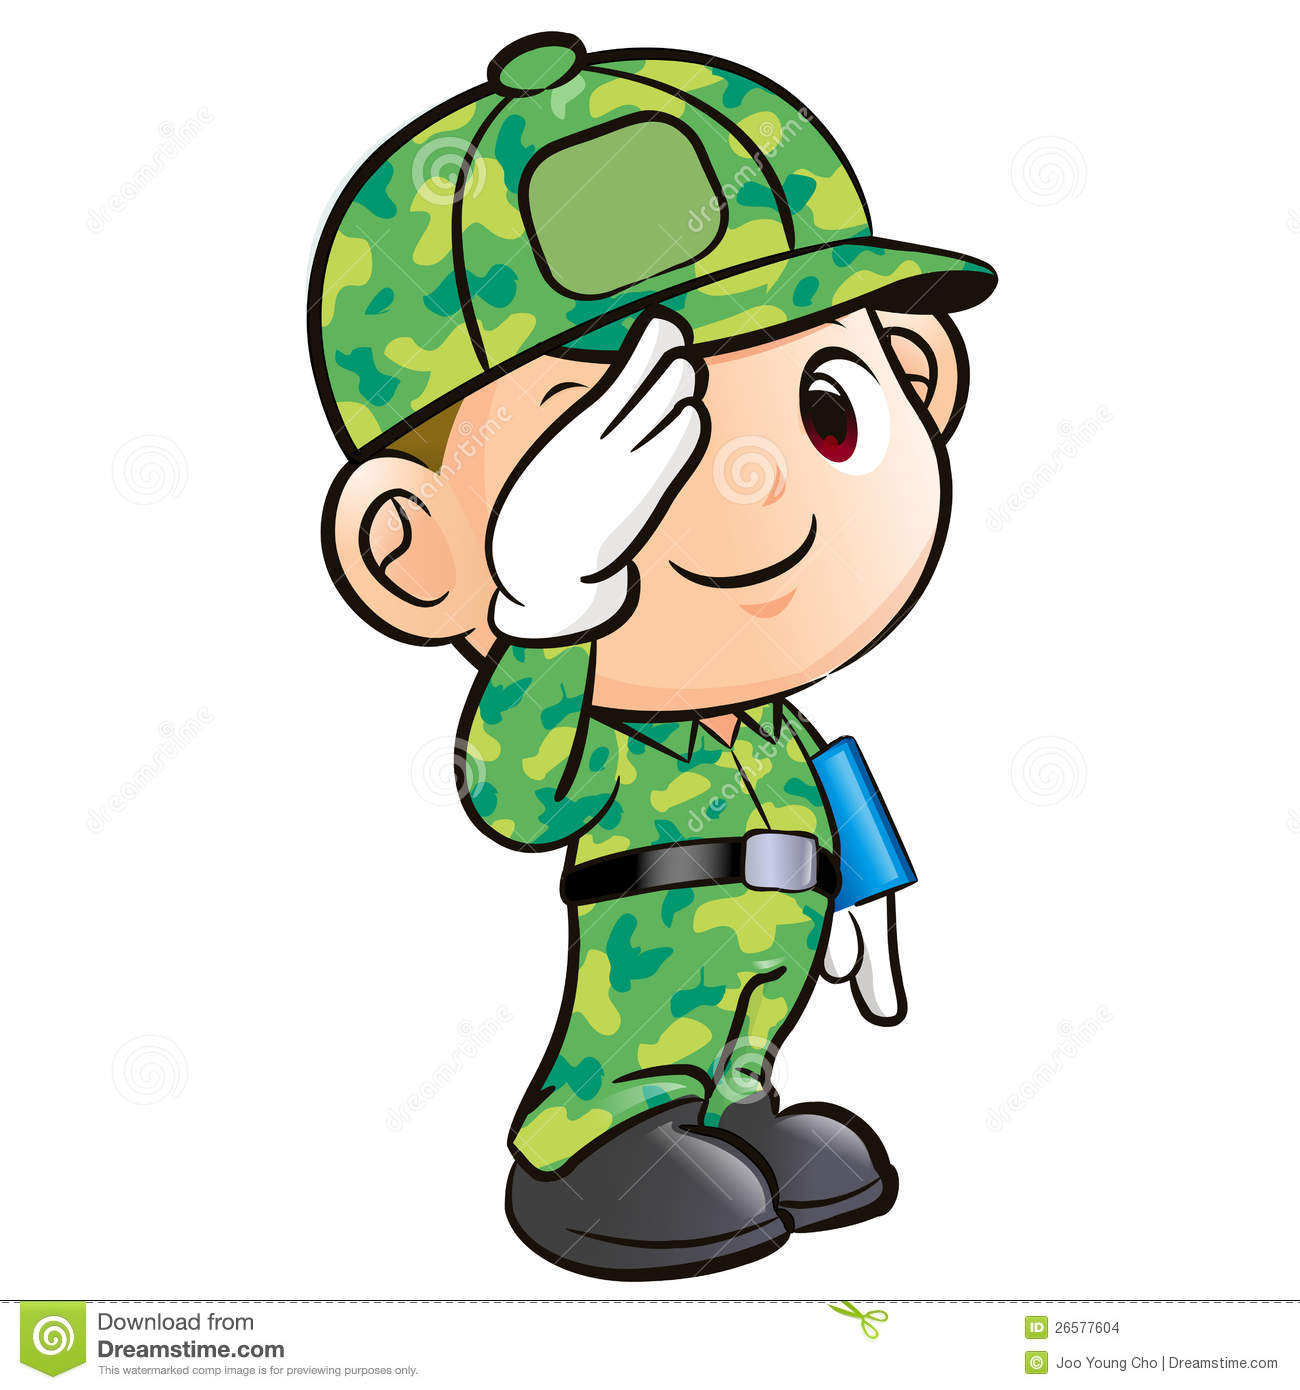 Salute clipart free svg transparent library Soldier Saluting Cliparts | Free download best Soldier Saluting ... svg transparent library